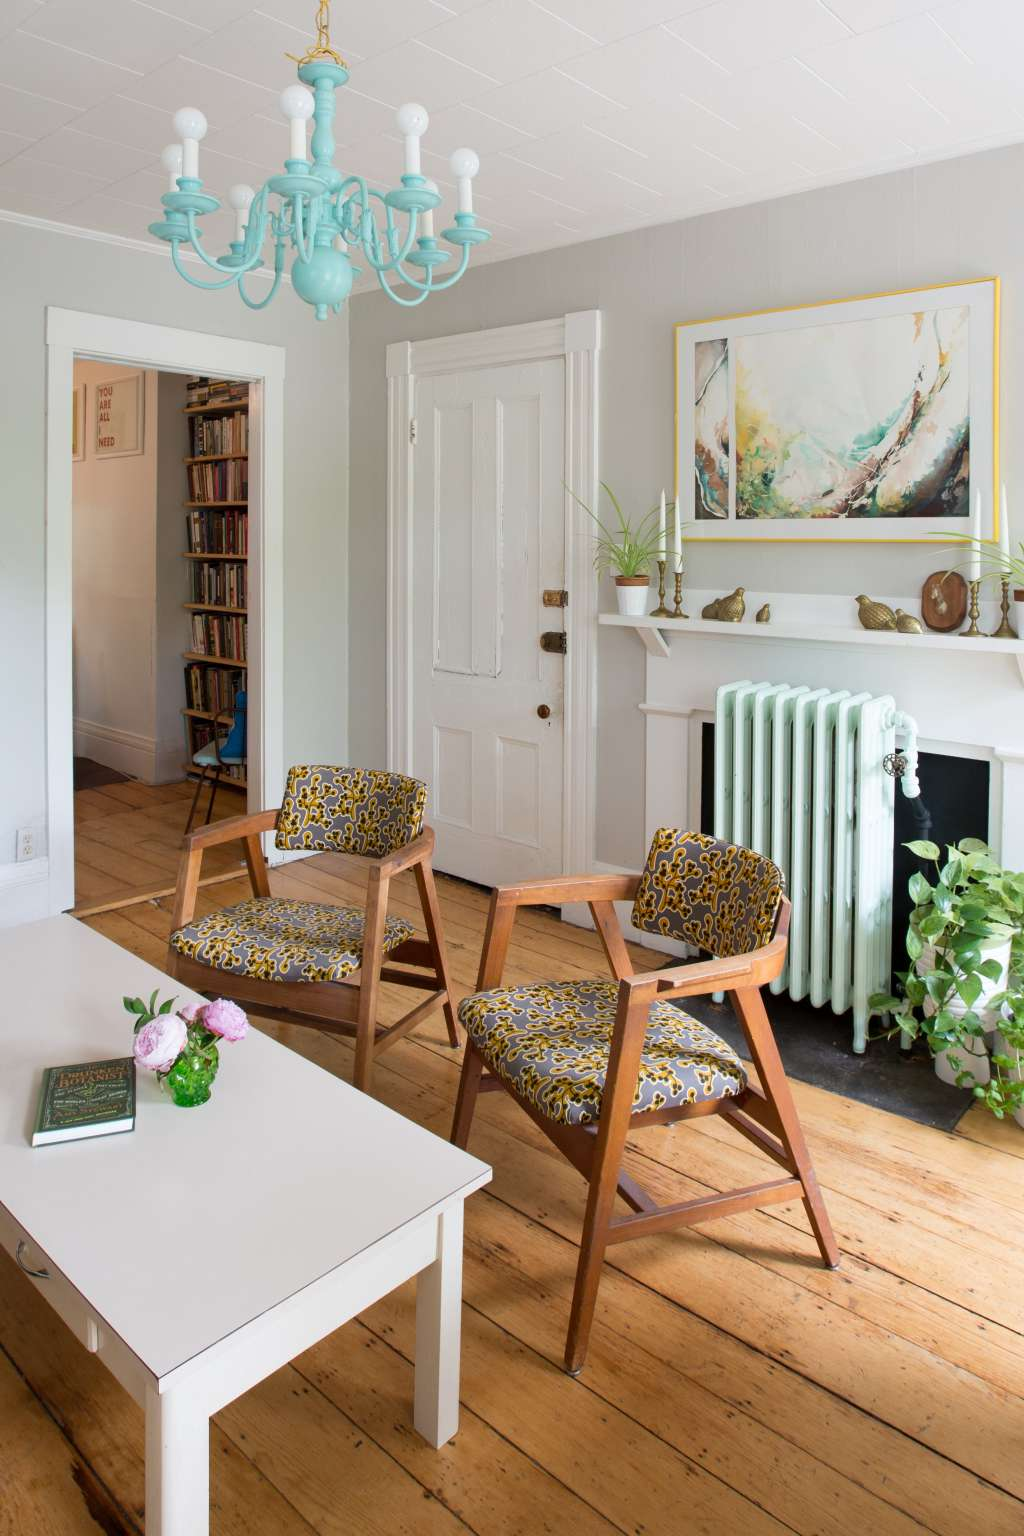 Superieur 3 New Ways To Sell Furniture (for People Who Are Skeeved Out By Craigslist)    Apartment Therapy